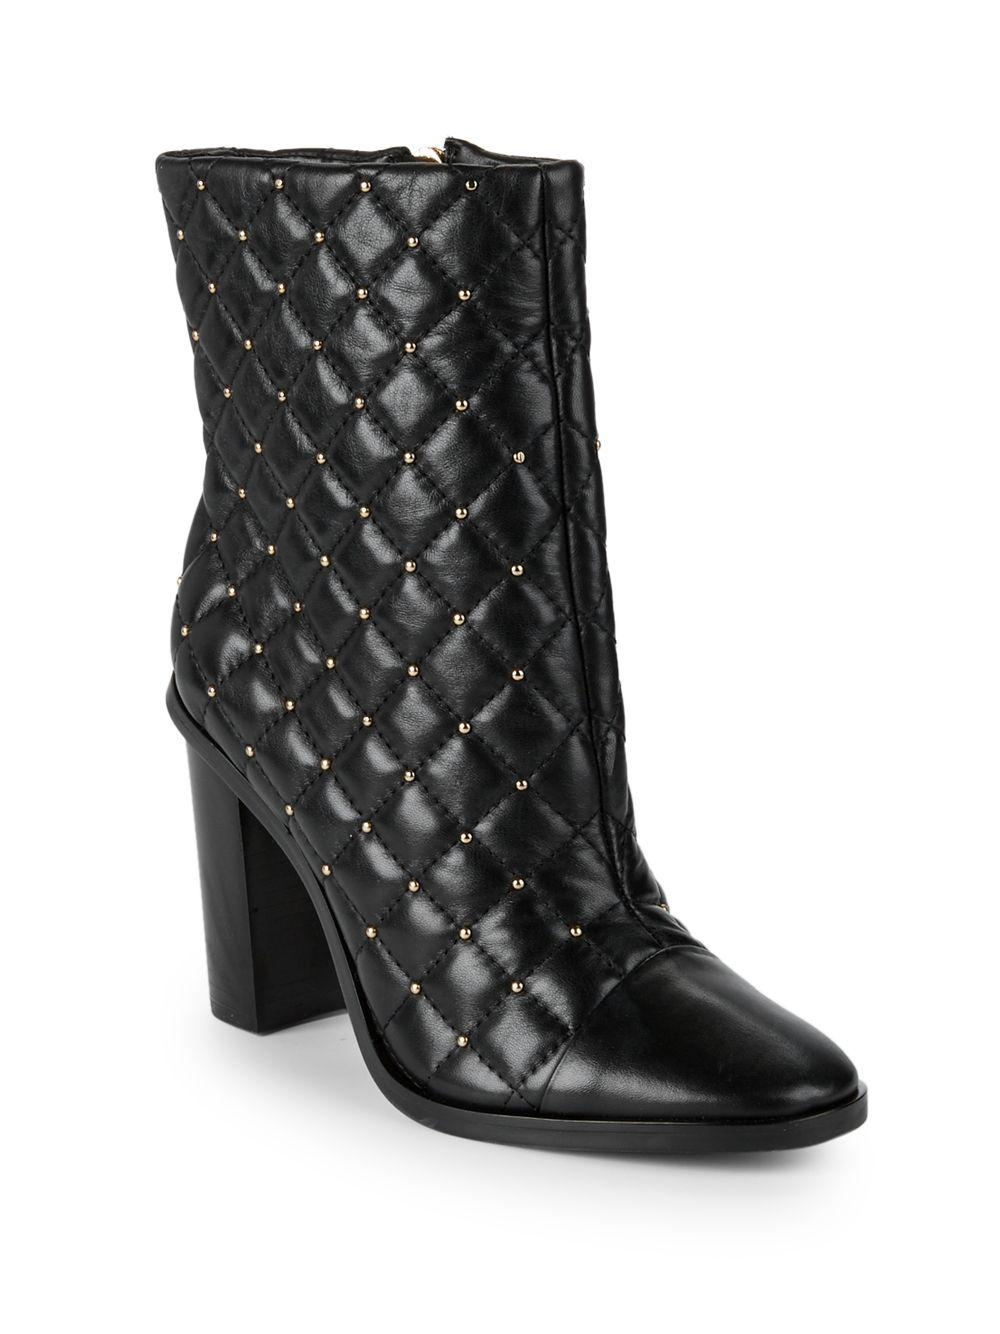 1ae34d88d346 Lyst - Ava   Aiden Quilted Leather Booties in Black